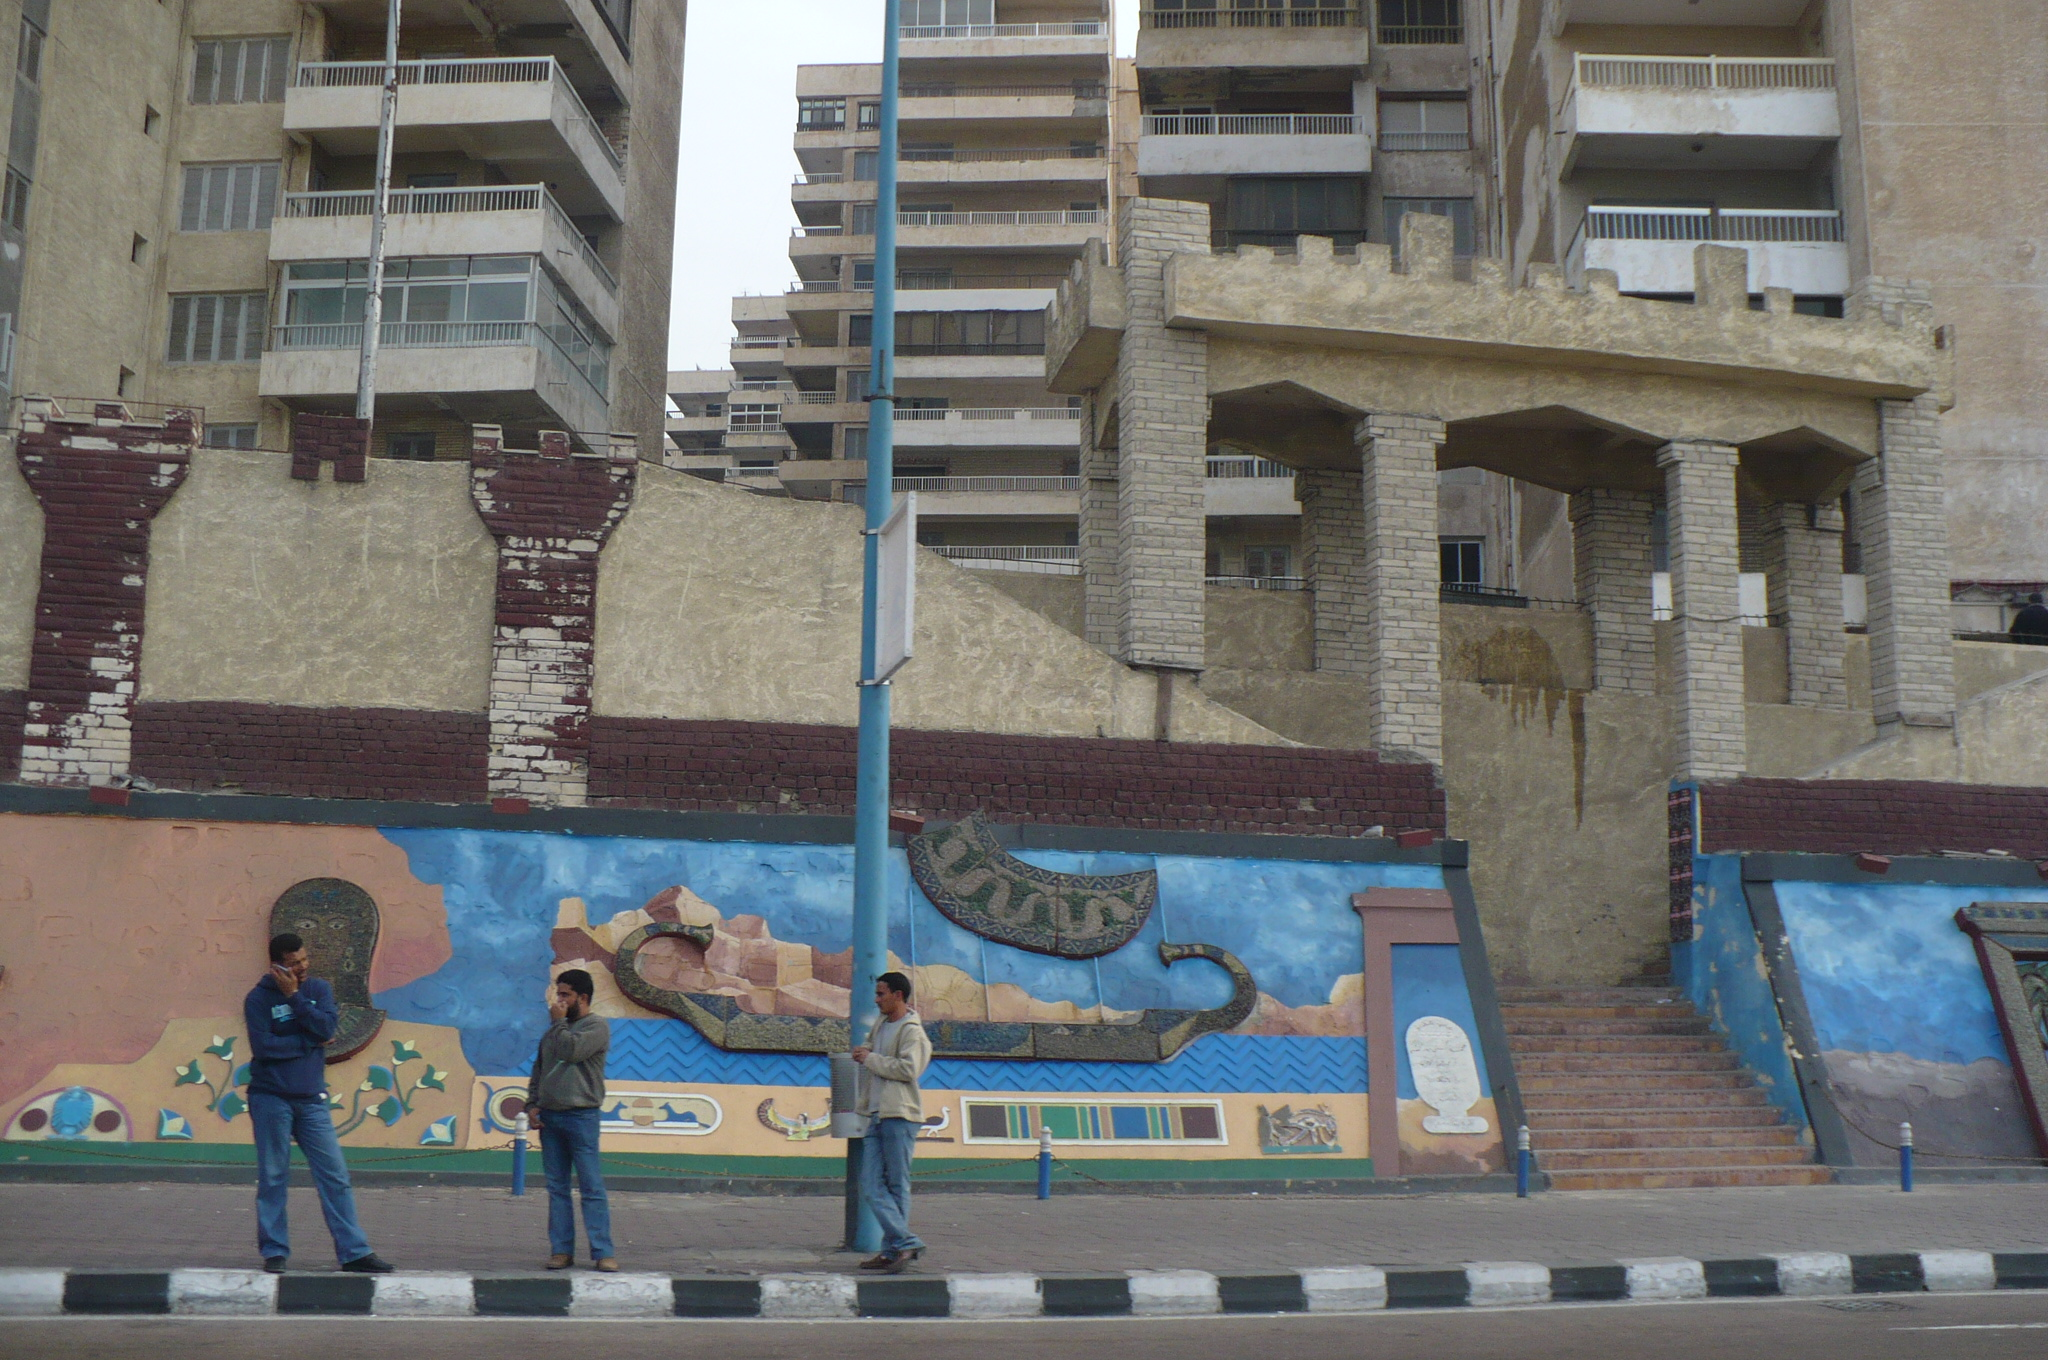 Alexandria and its lovely details